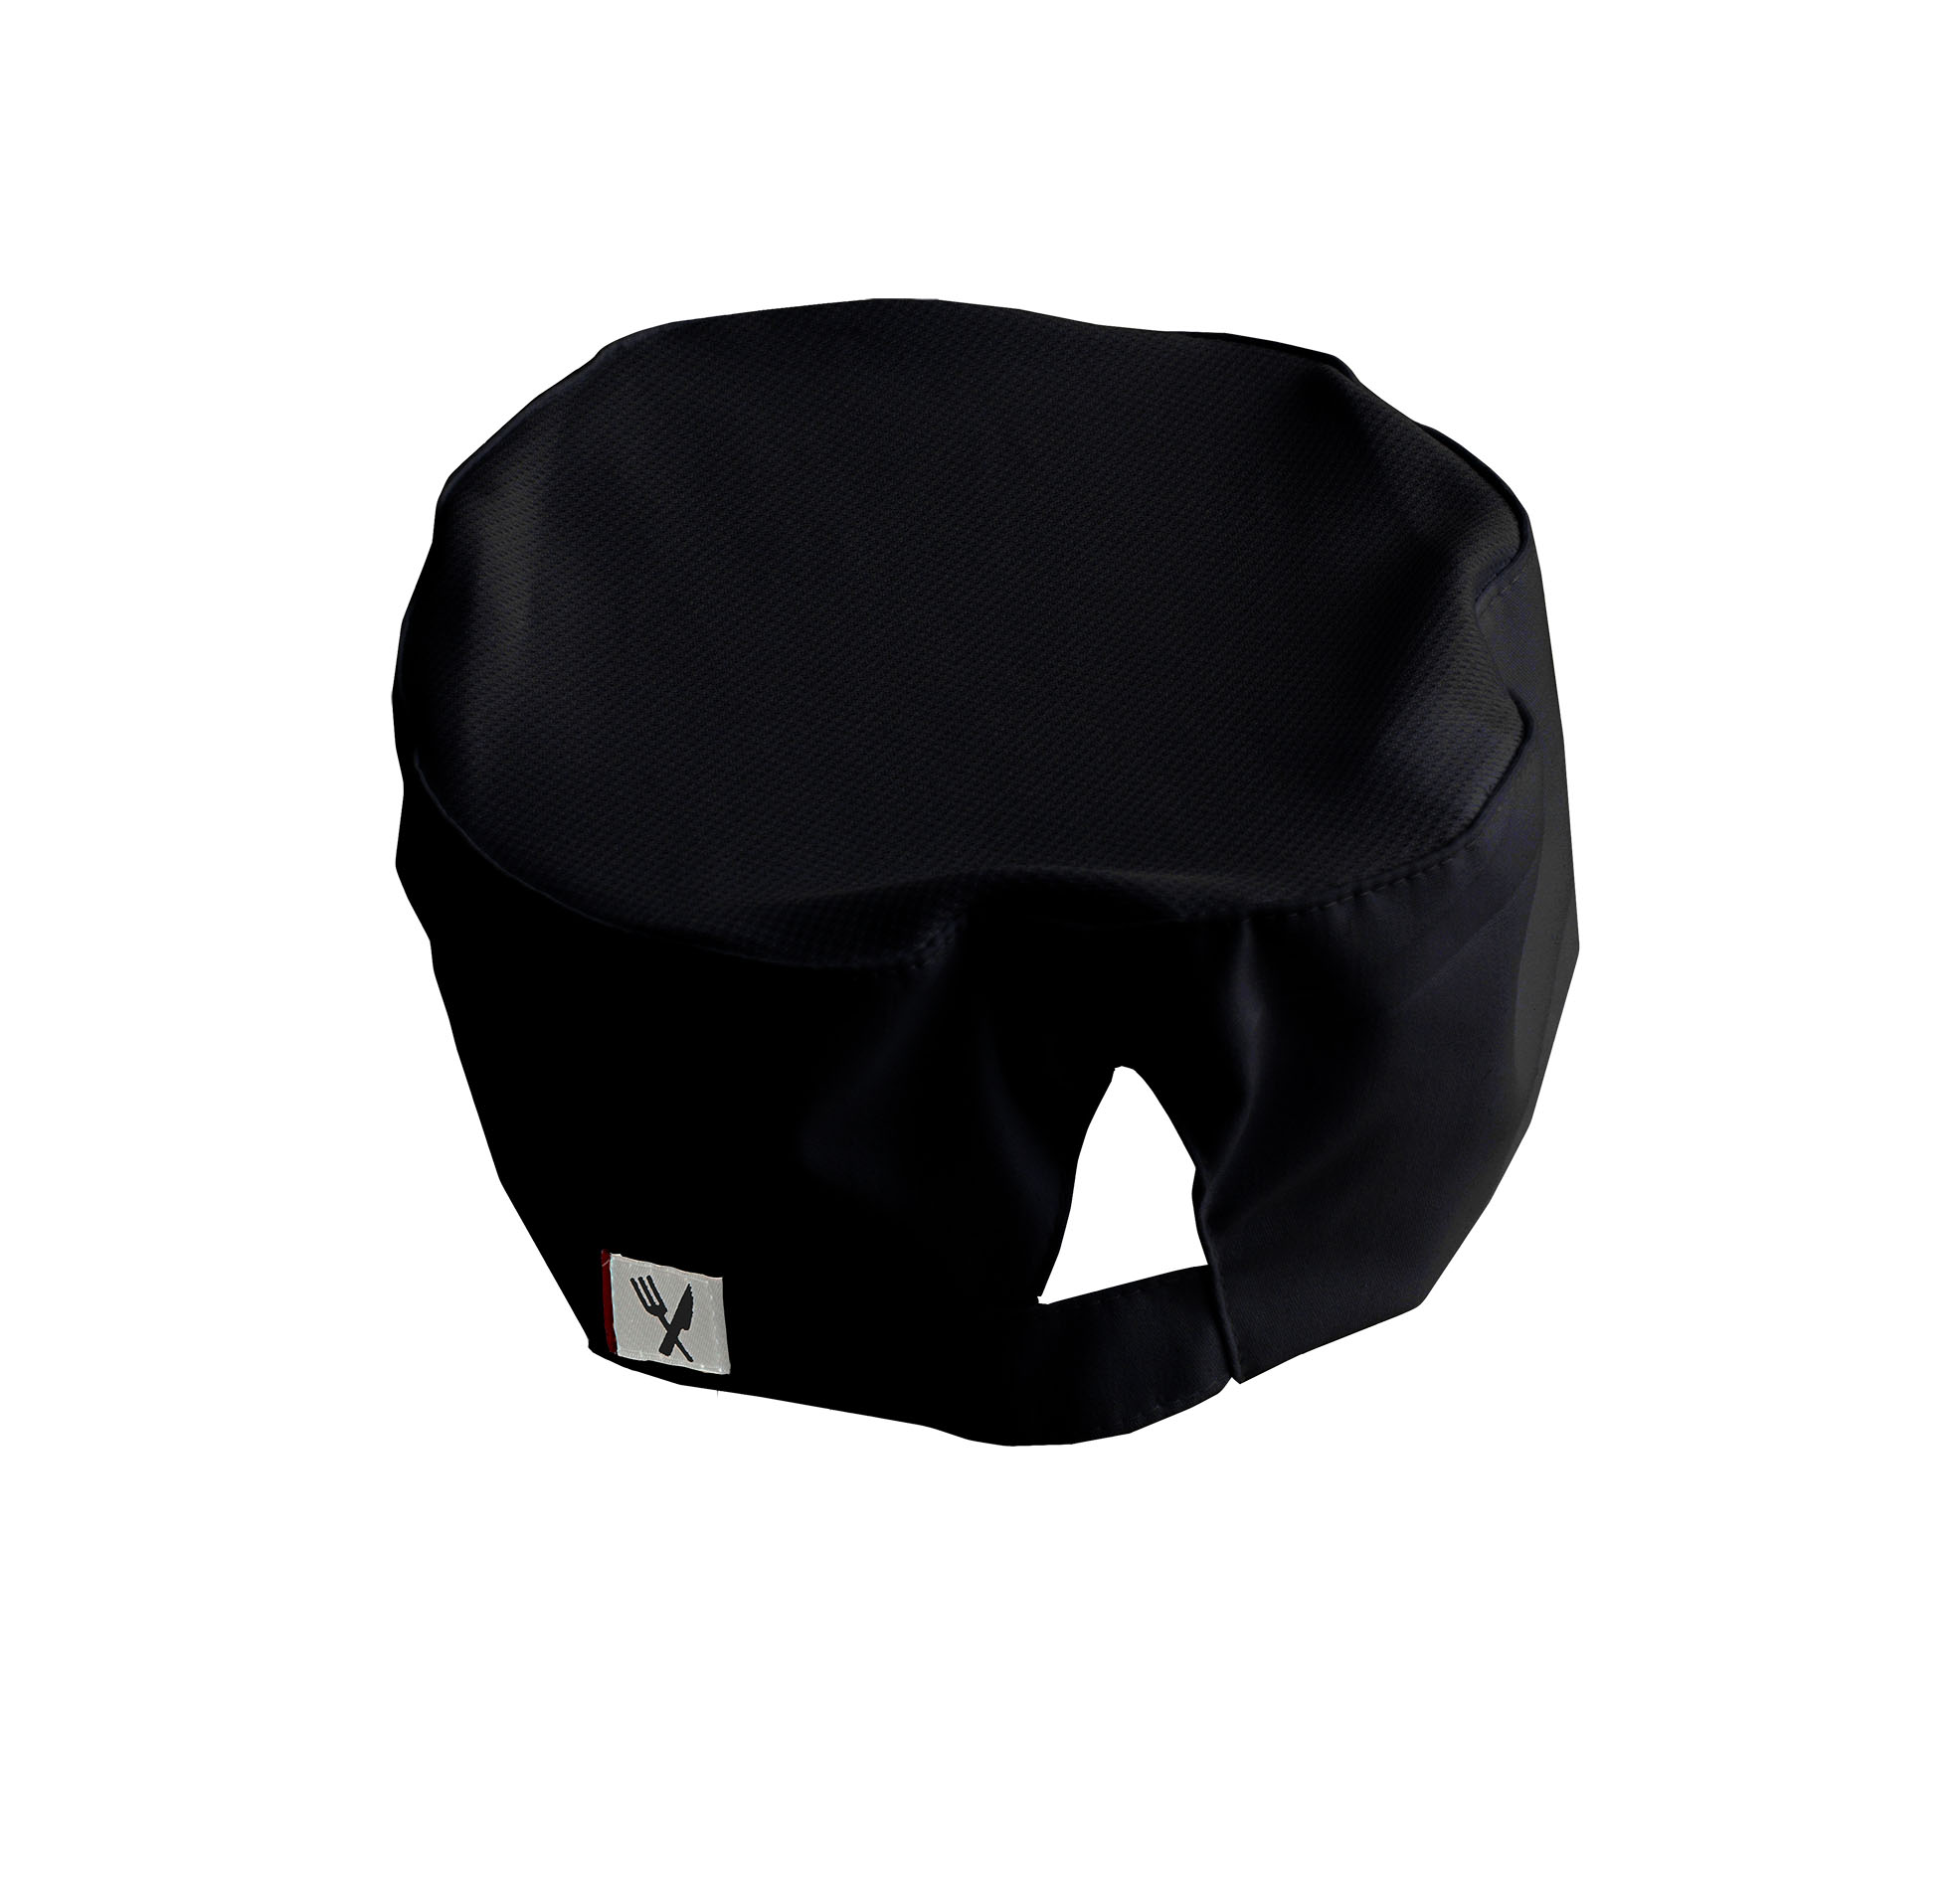 X502-Chef Skull Cap with Mesh, Adjustable